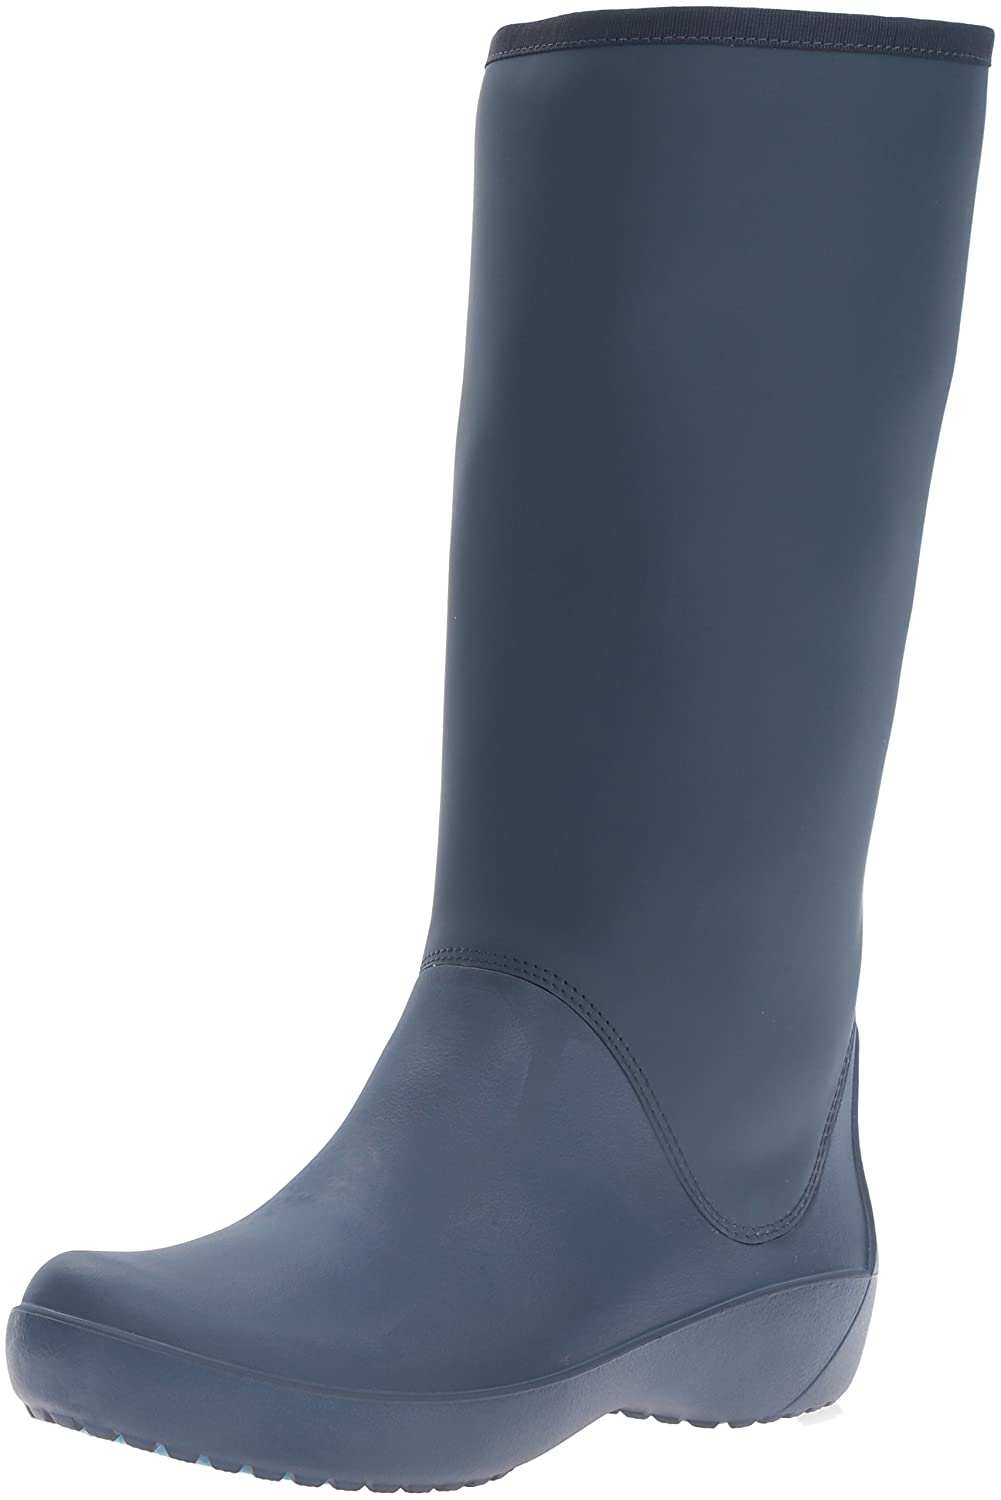 Crocs Women's Rain Floe Tall Boot B01A6LK584 5 B(M) US|Navy